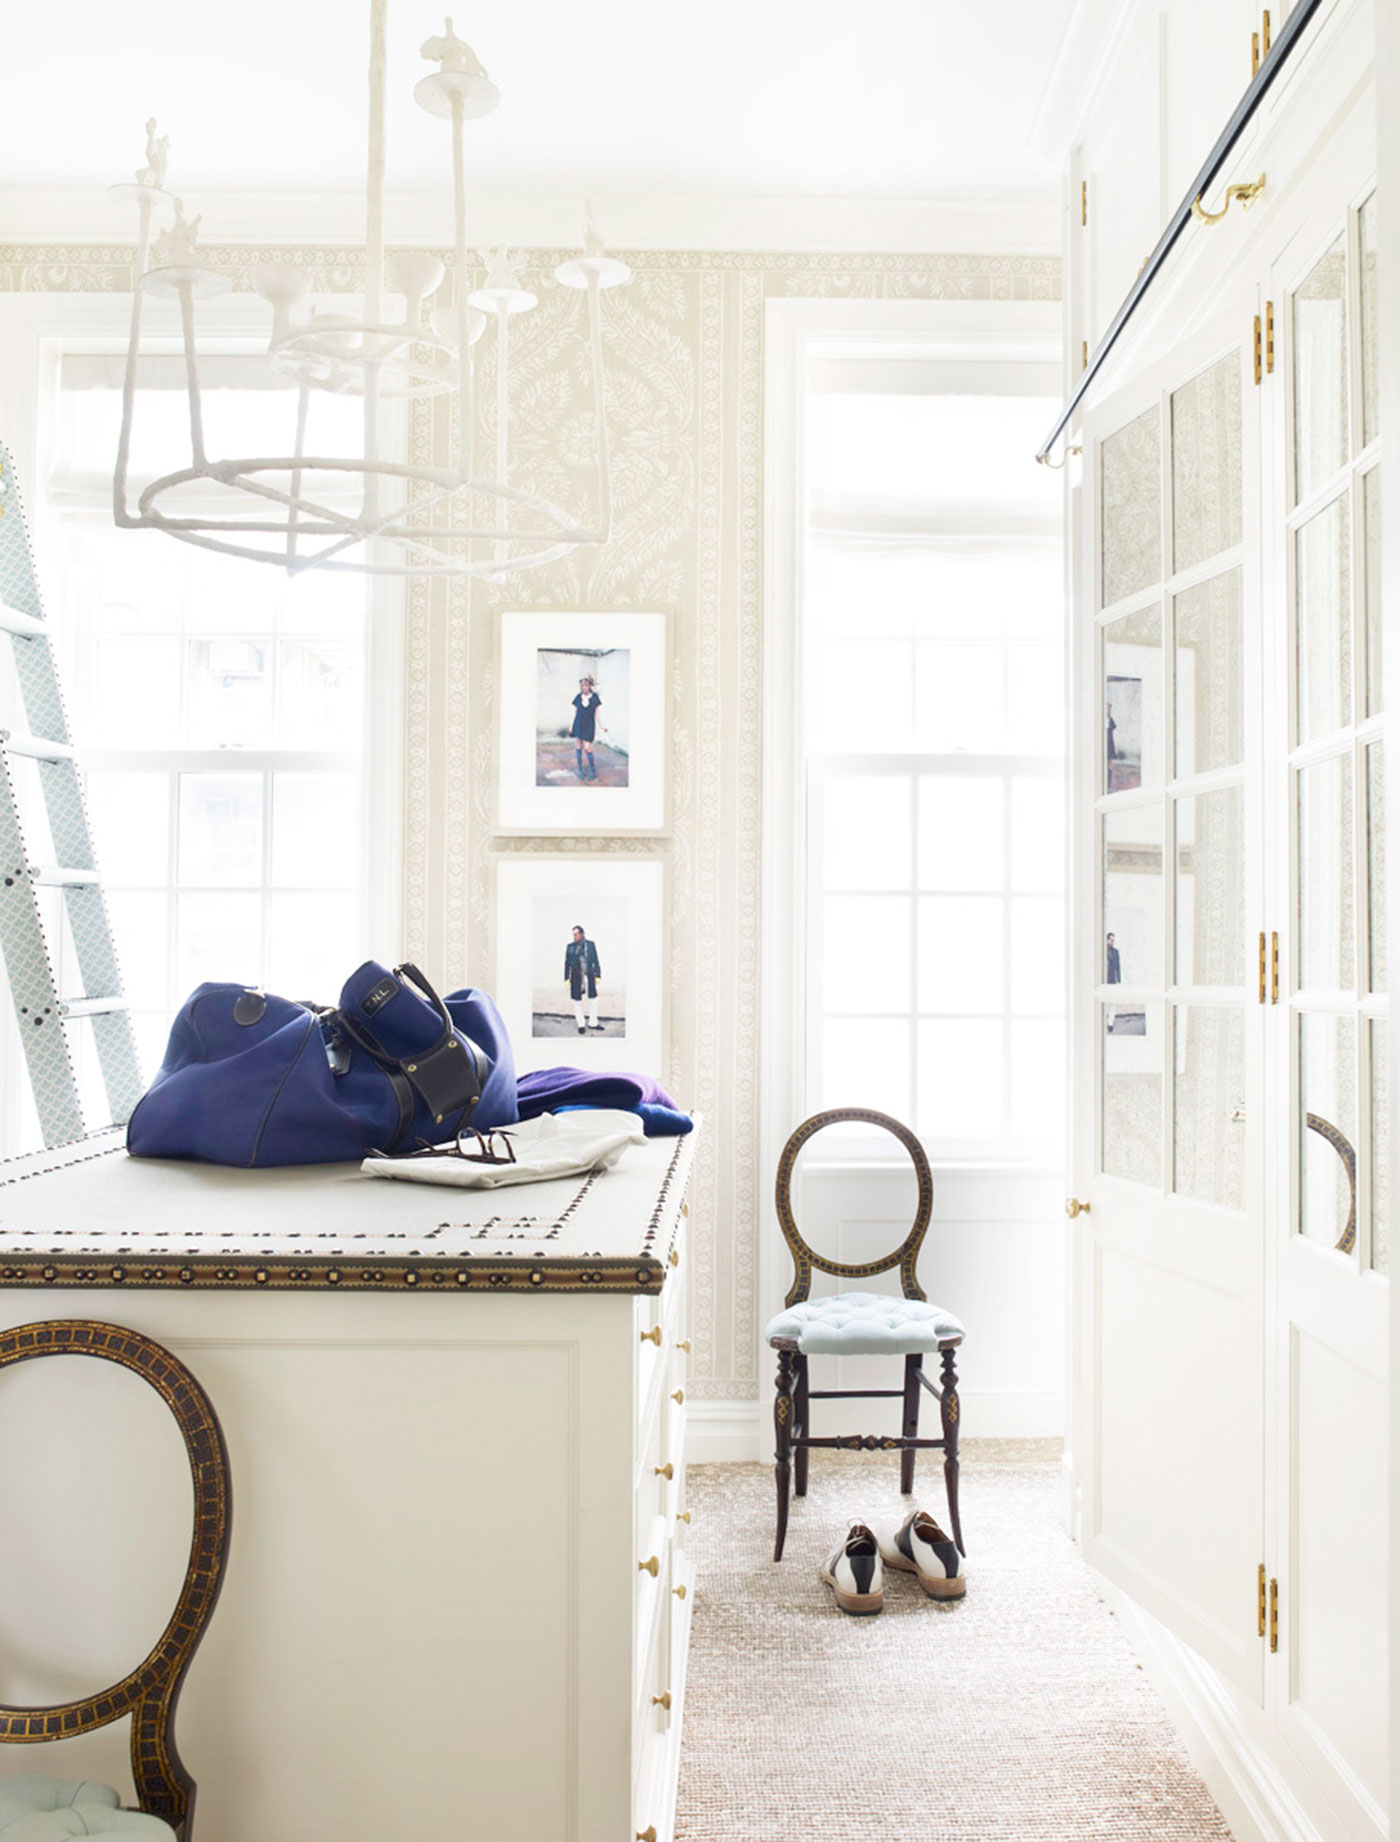 Every detail counts in a beautifully fitted and finished dressing room. by Jeffrey Bilhuber